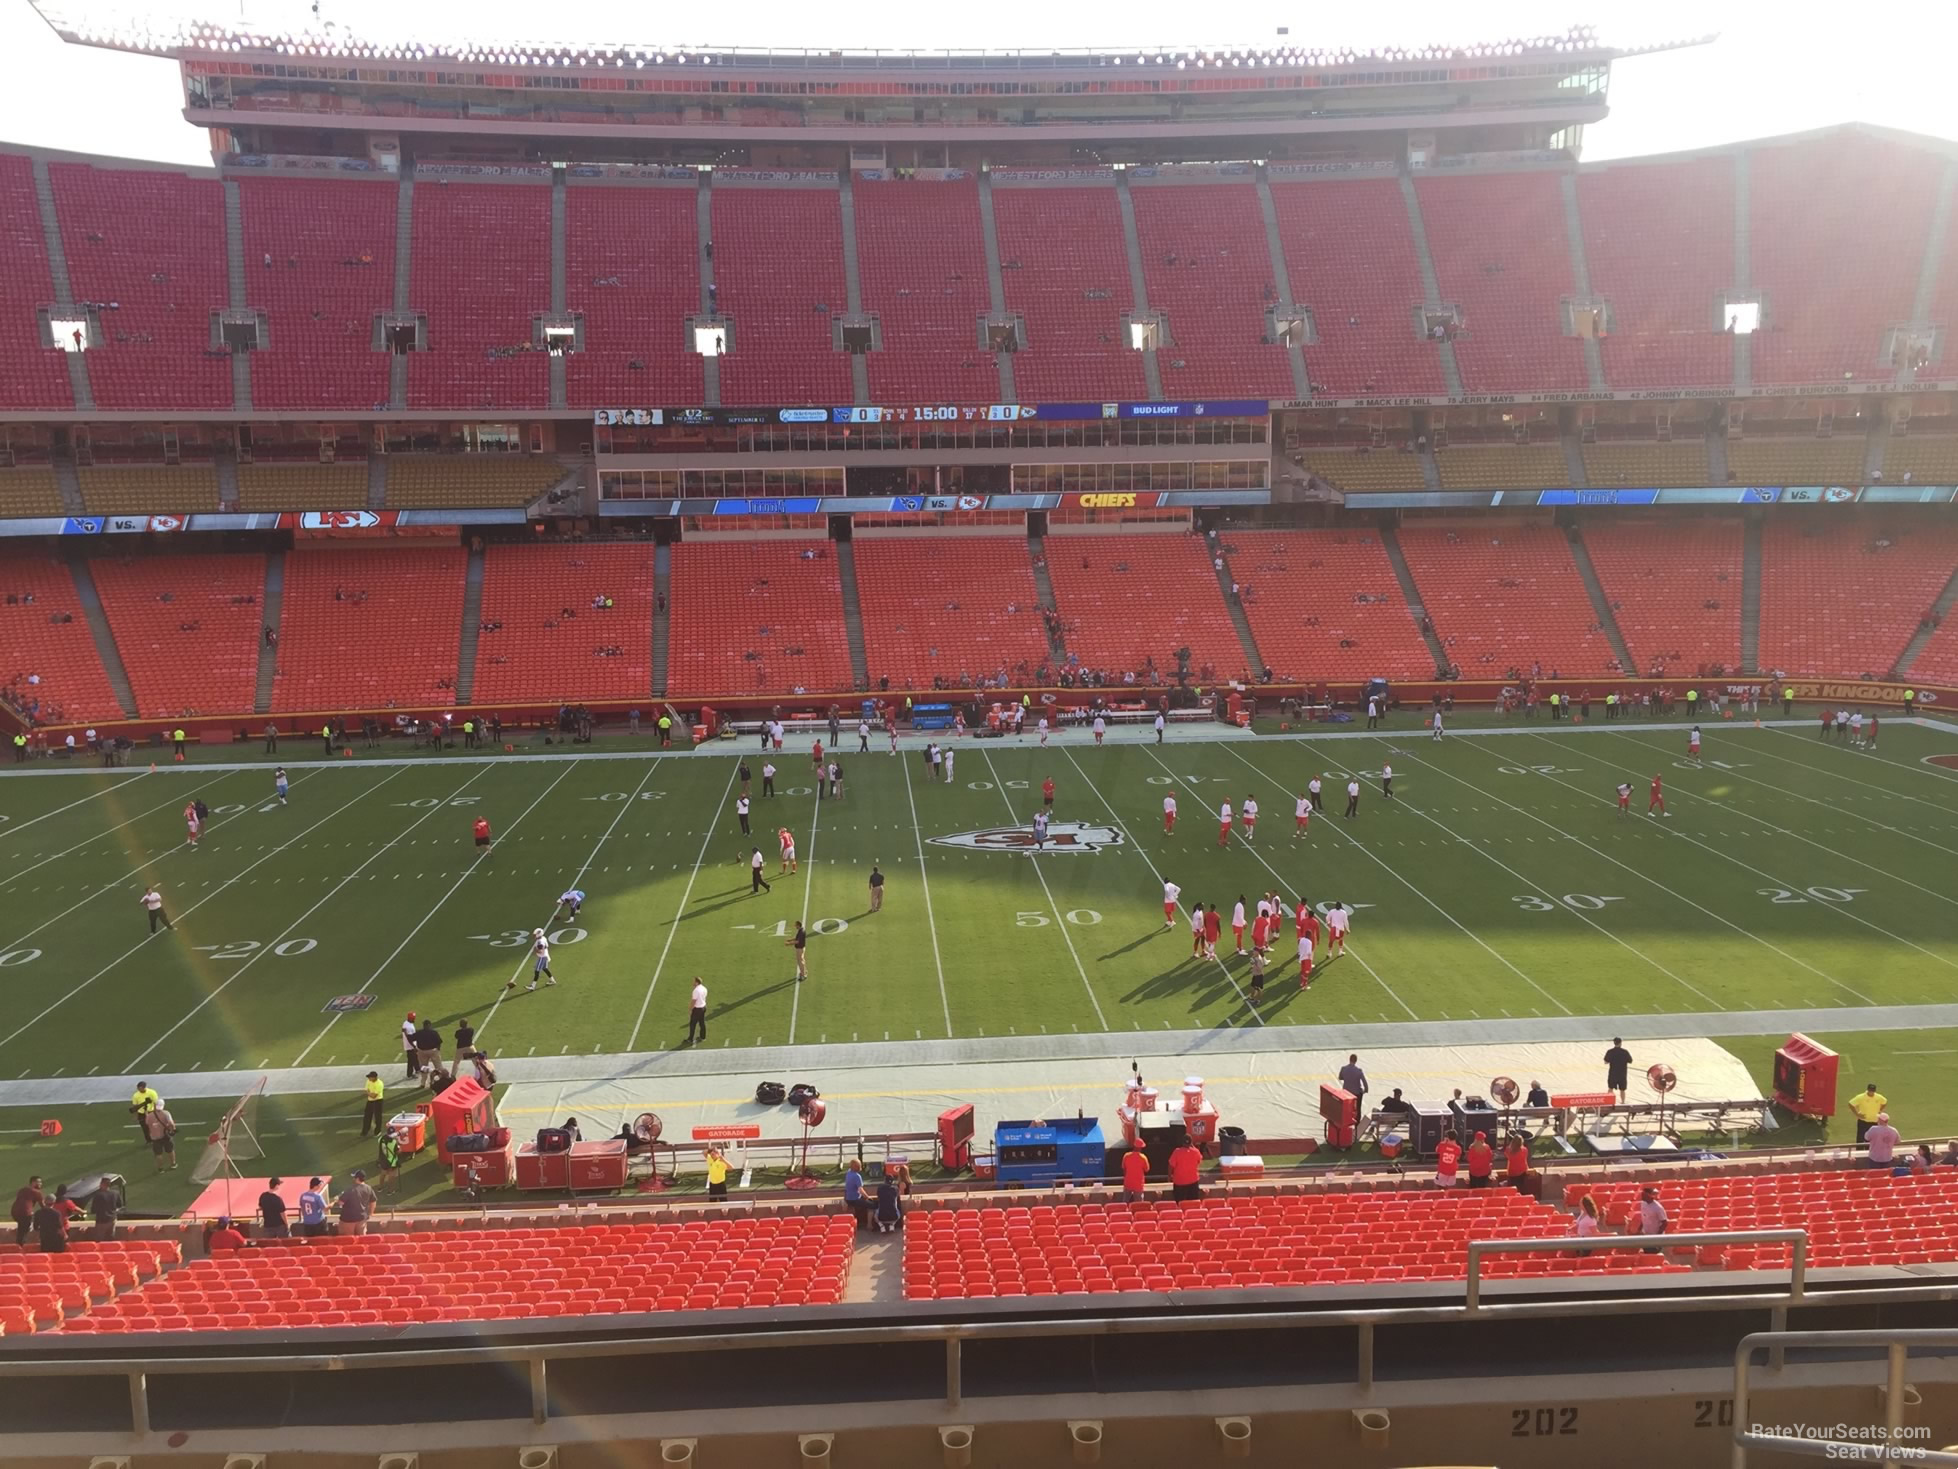 Seat View for Arrowhead Stadium Section 202, Row 7